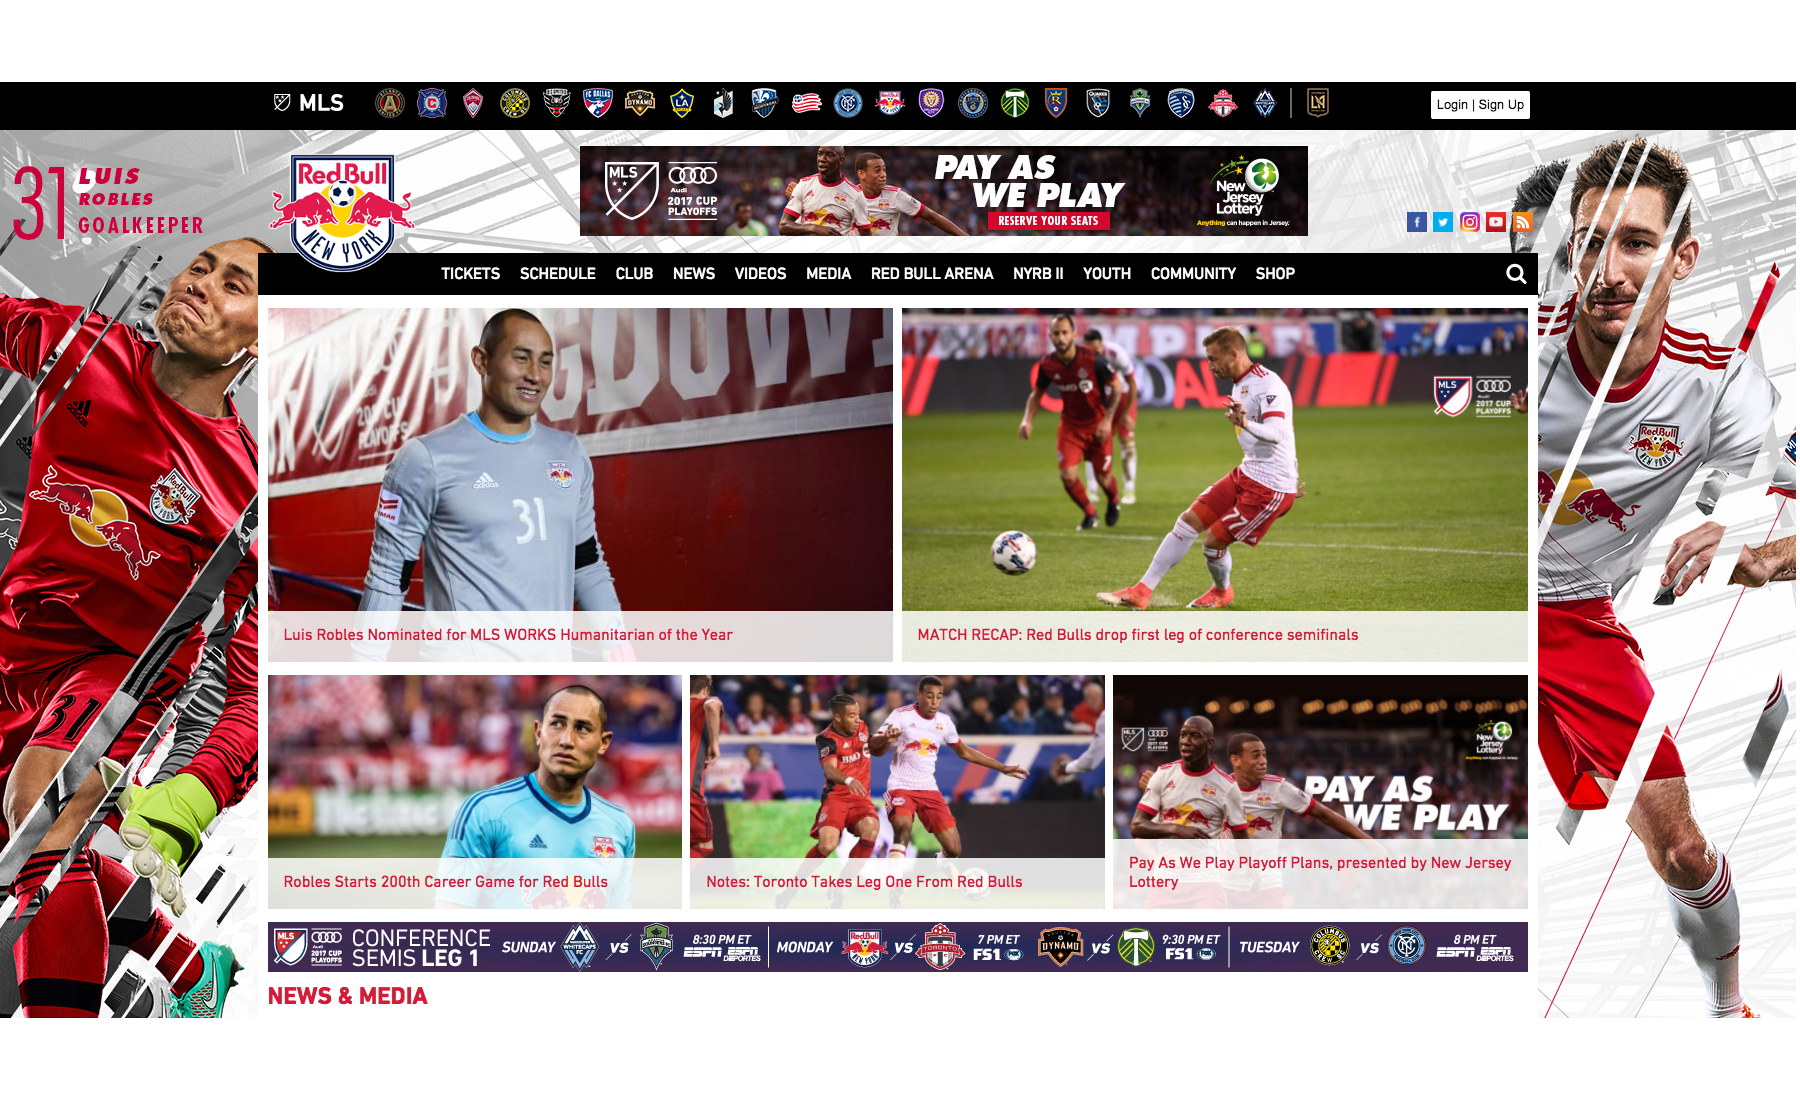 Team Branded Site within MLS